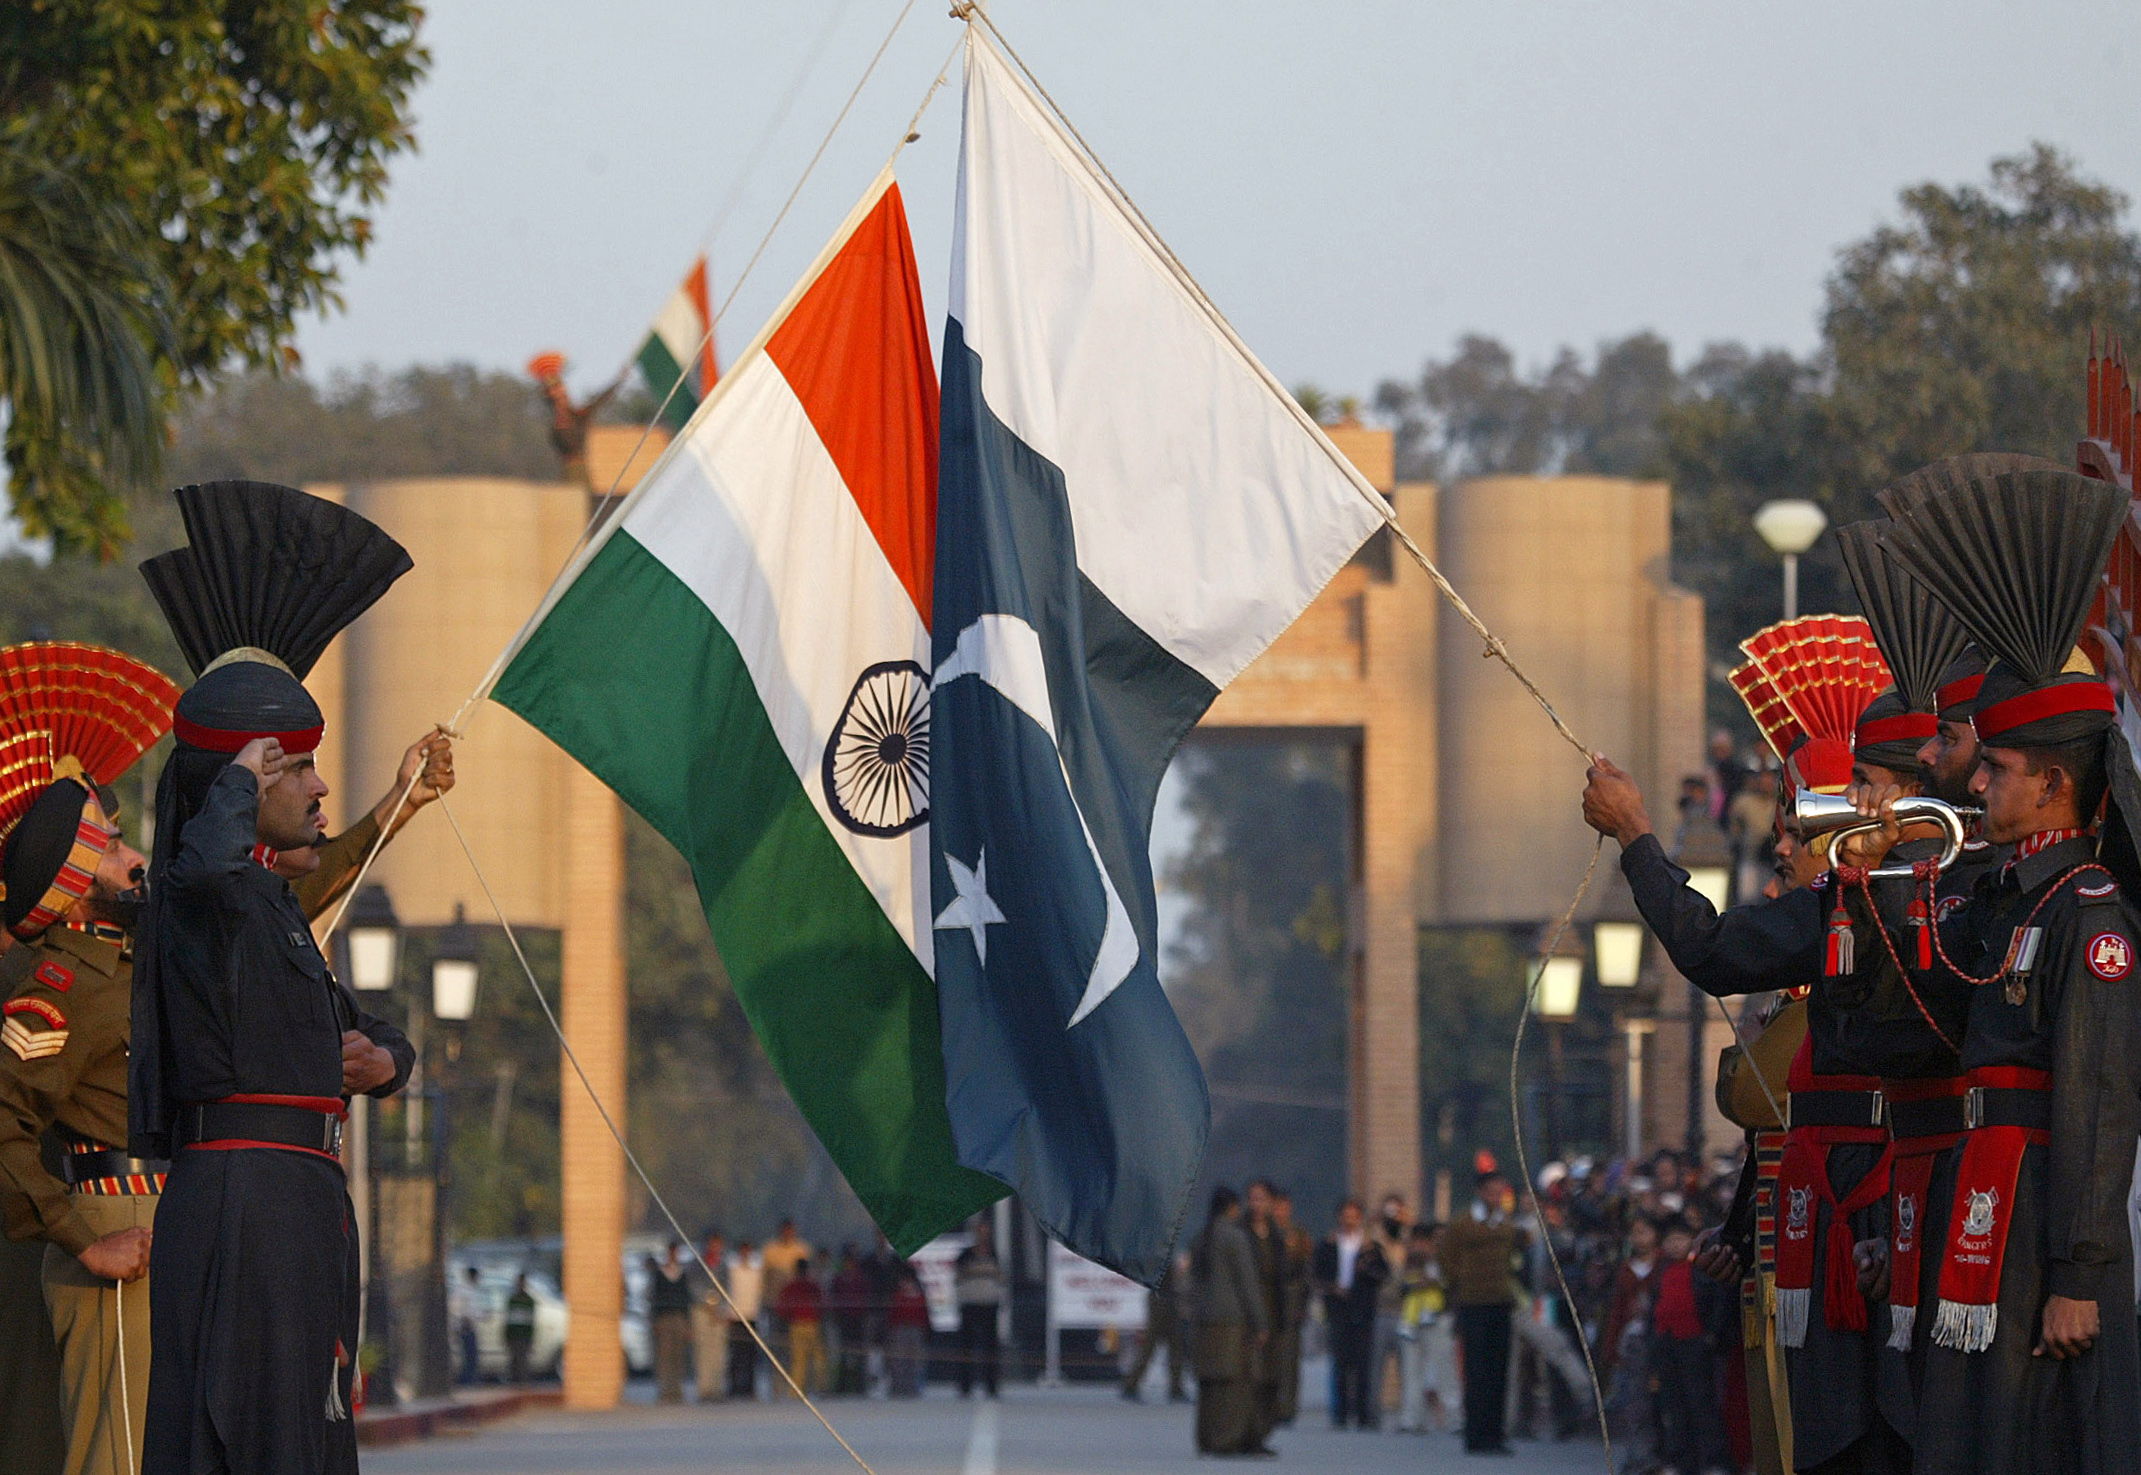 Pakistan Rangers and Indian Border Security Force personnel take part in the daily flag lowering ceremony at their joint border post of Wagah near Lahore January 10 , 2007. On Saturday, Indian Foreign Minister Pranab Mukherjee is due in Islamabad for another round of talks in a peace process that has yet to yield substantial results, but it has at least ushered in a no-war phase in relations. REUTERS/Mohsin Raza (PAKISTAN) - RTR1L45Z